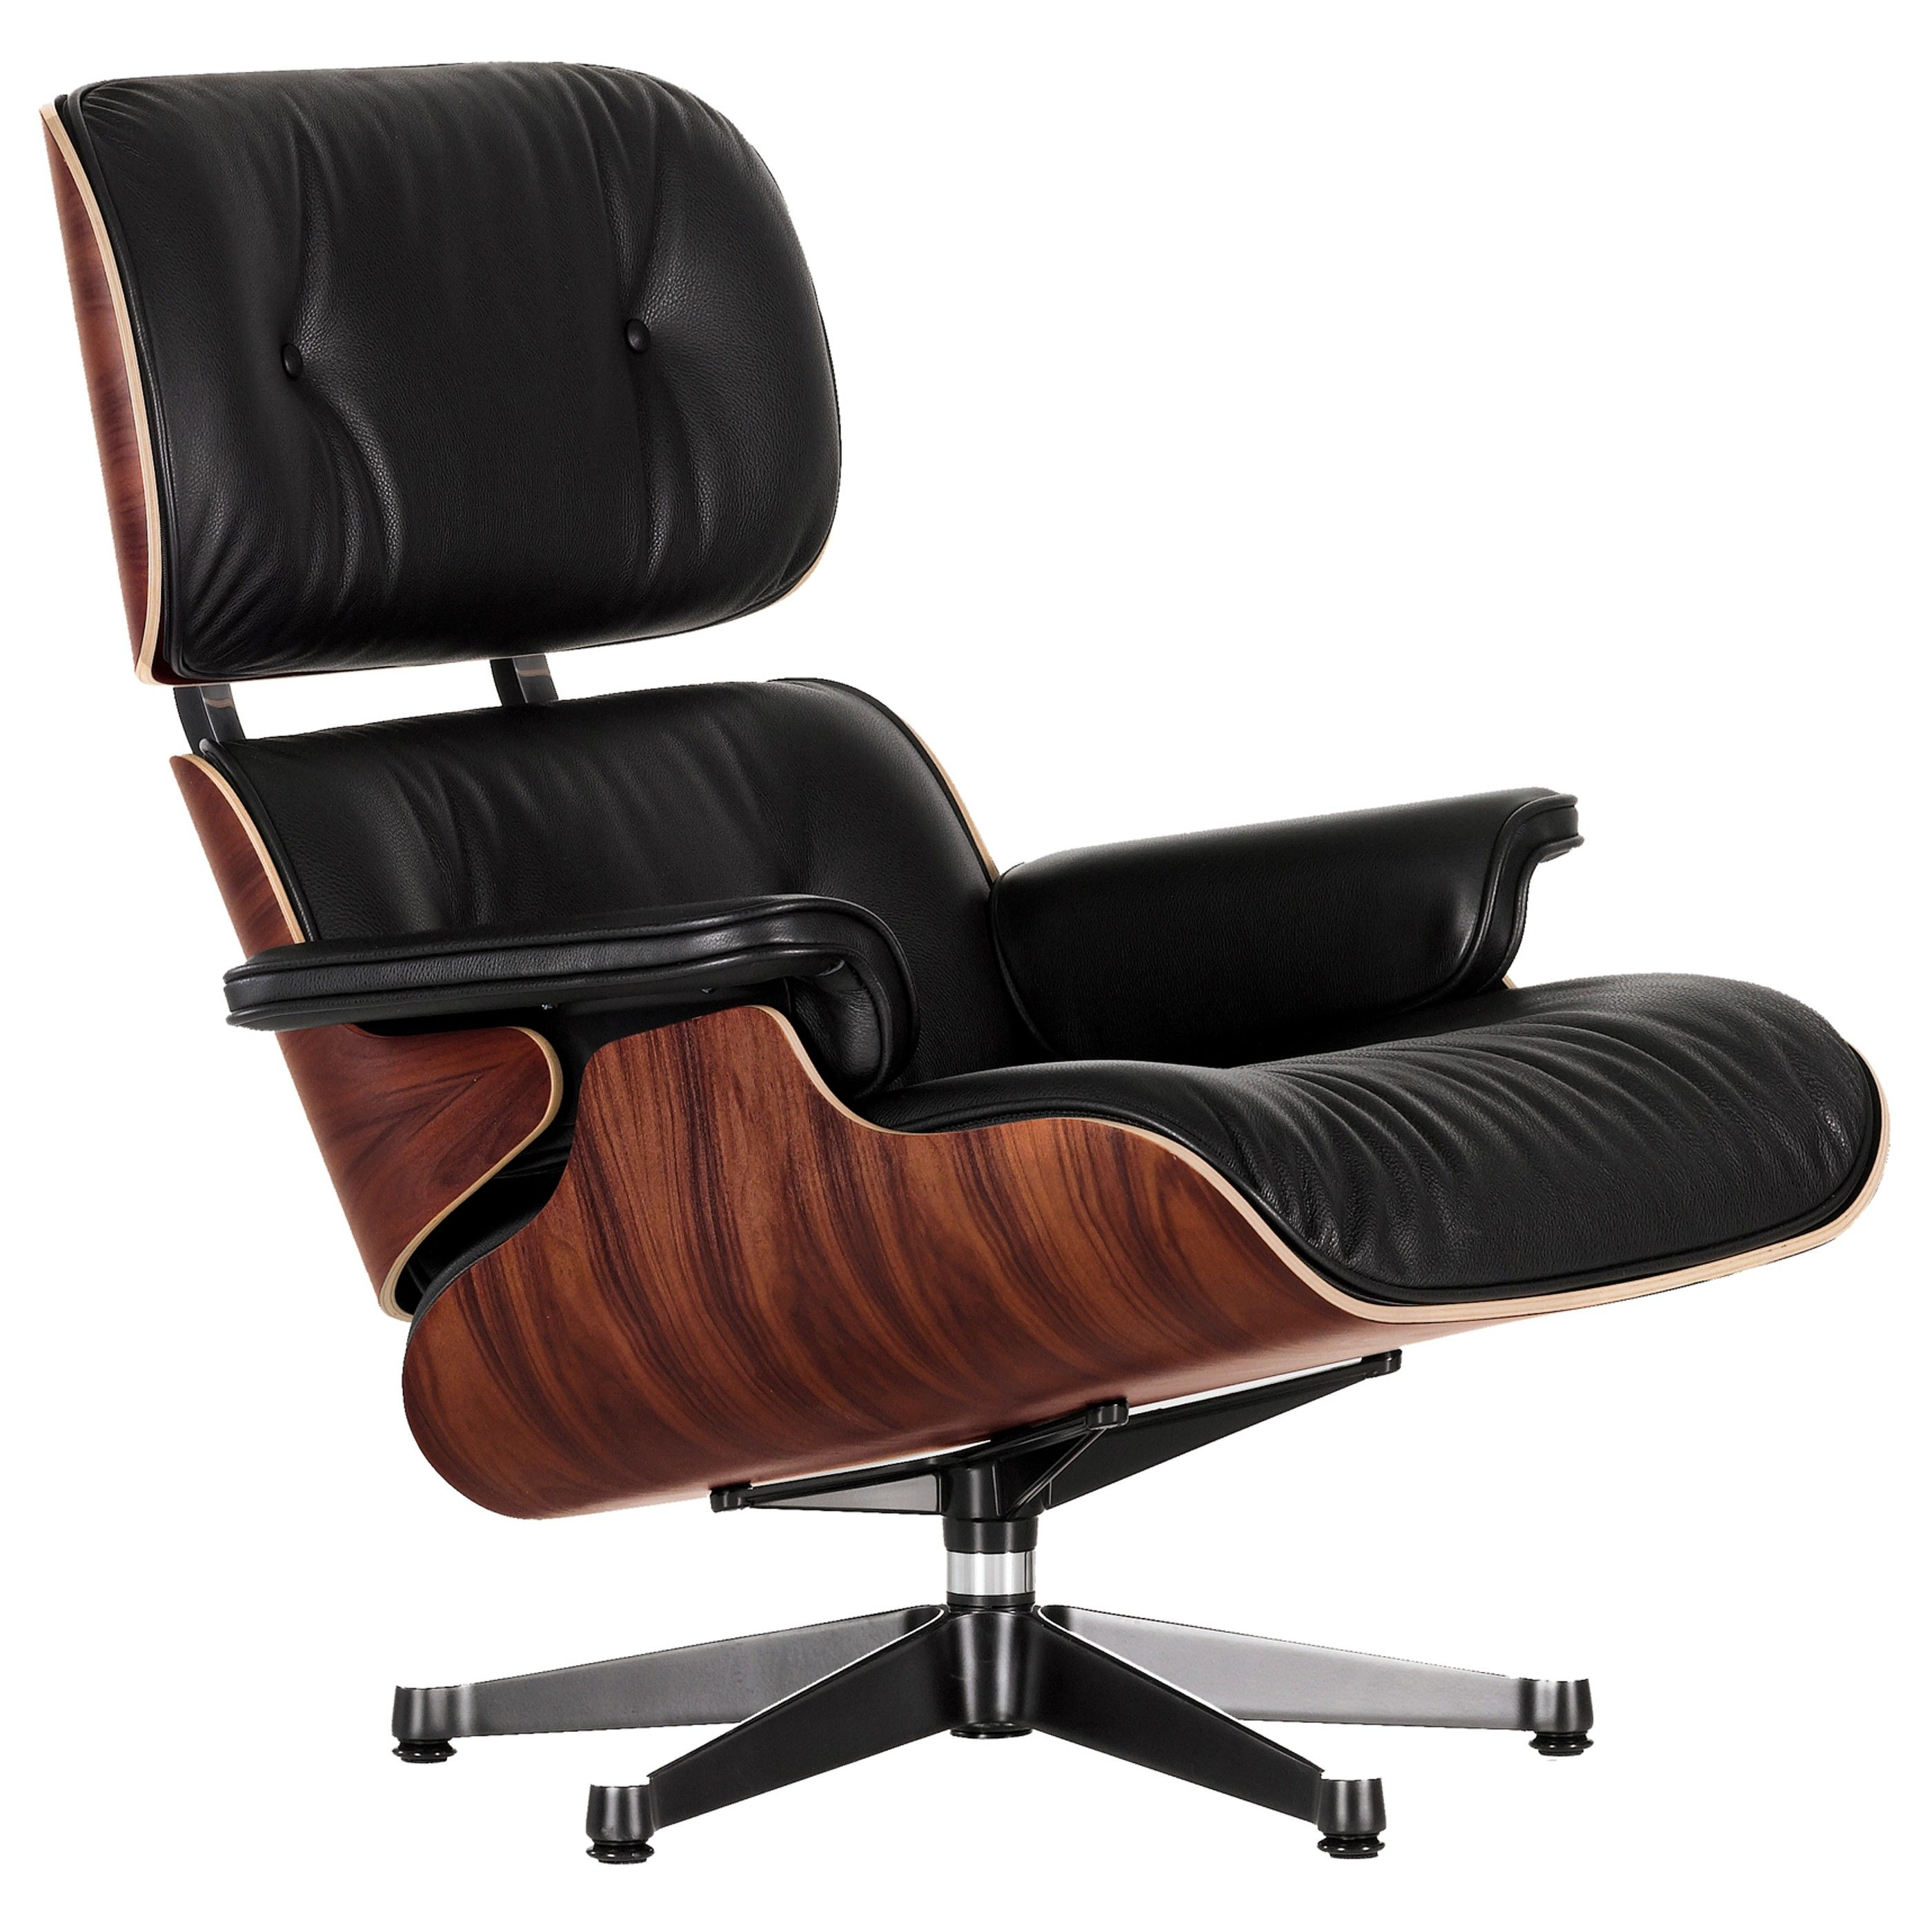 Eames Chair Sessel Vitra Eames Lounge Chair Sessel Santos Palisander Flinders